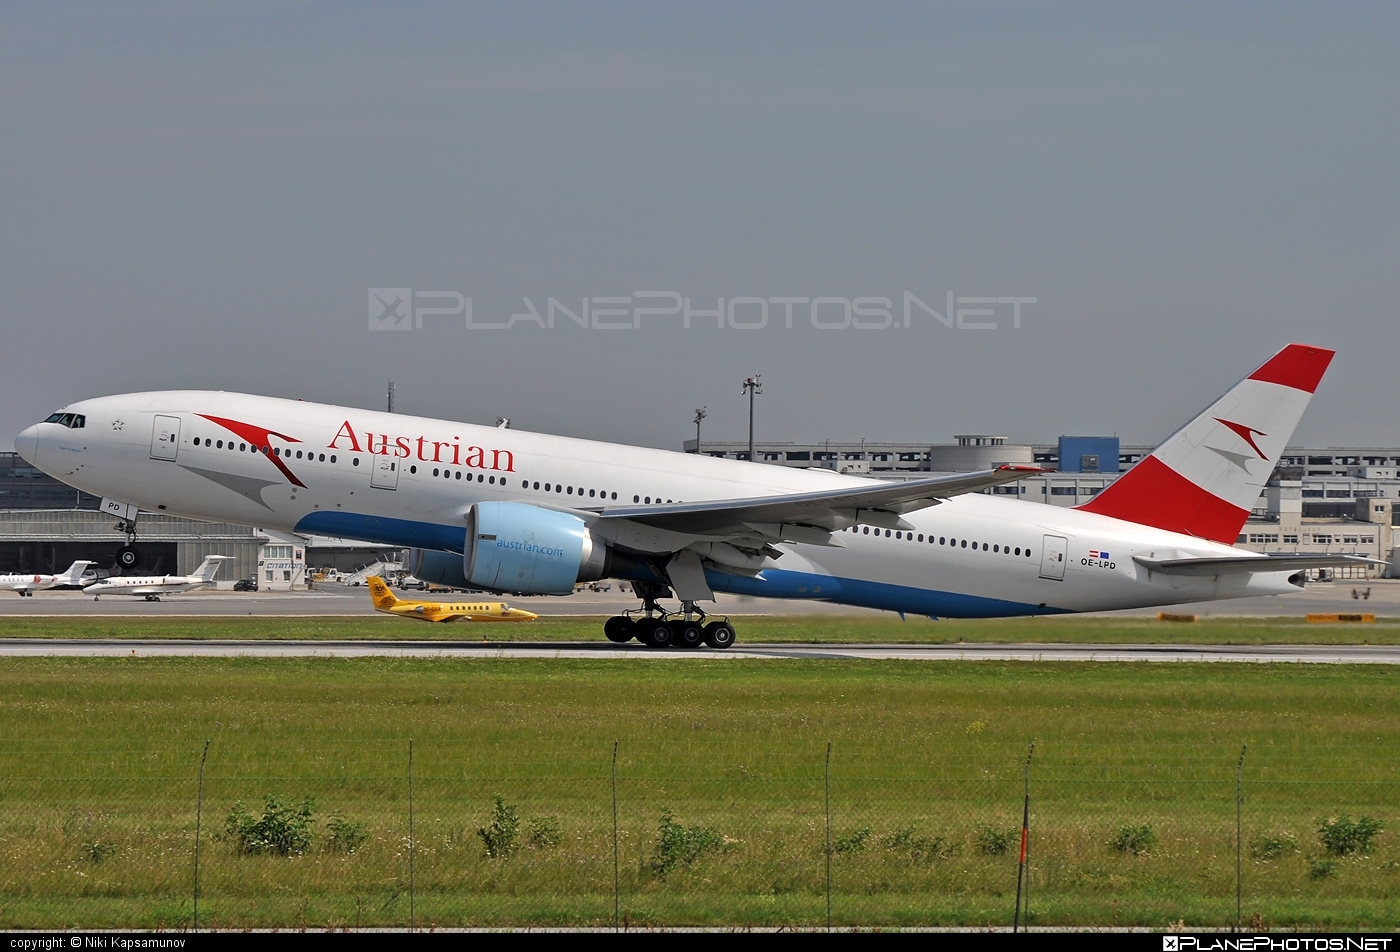 Boeing 777-200ER - OE-LPD operated by Austrian Airlines #b777 #b777er #boeing #boeing777 #tripleseven